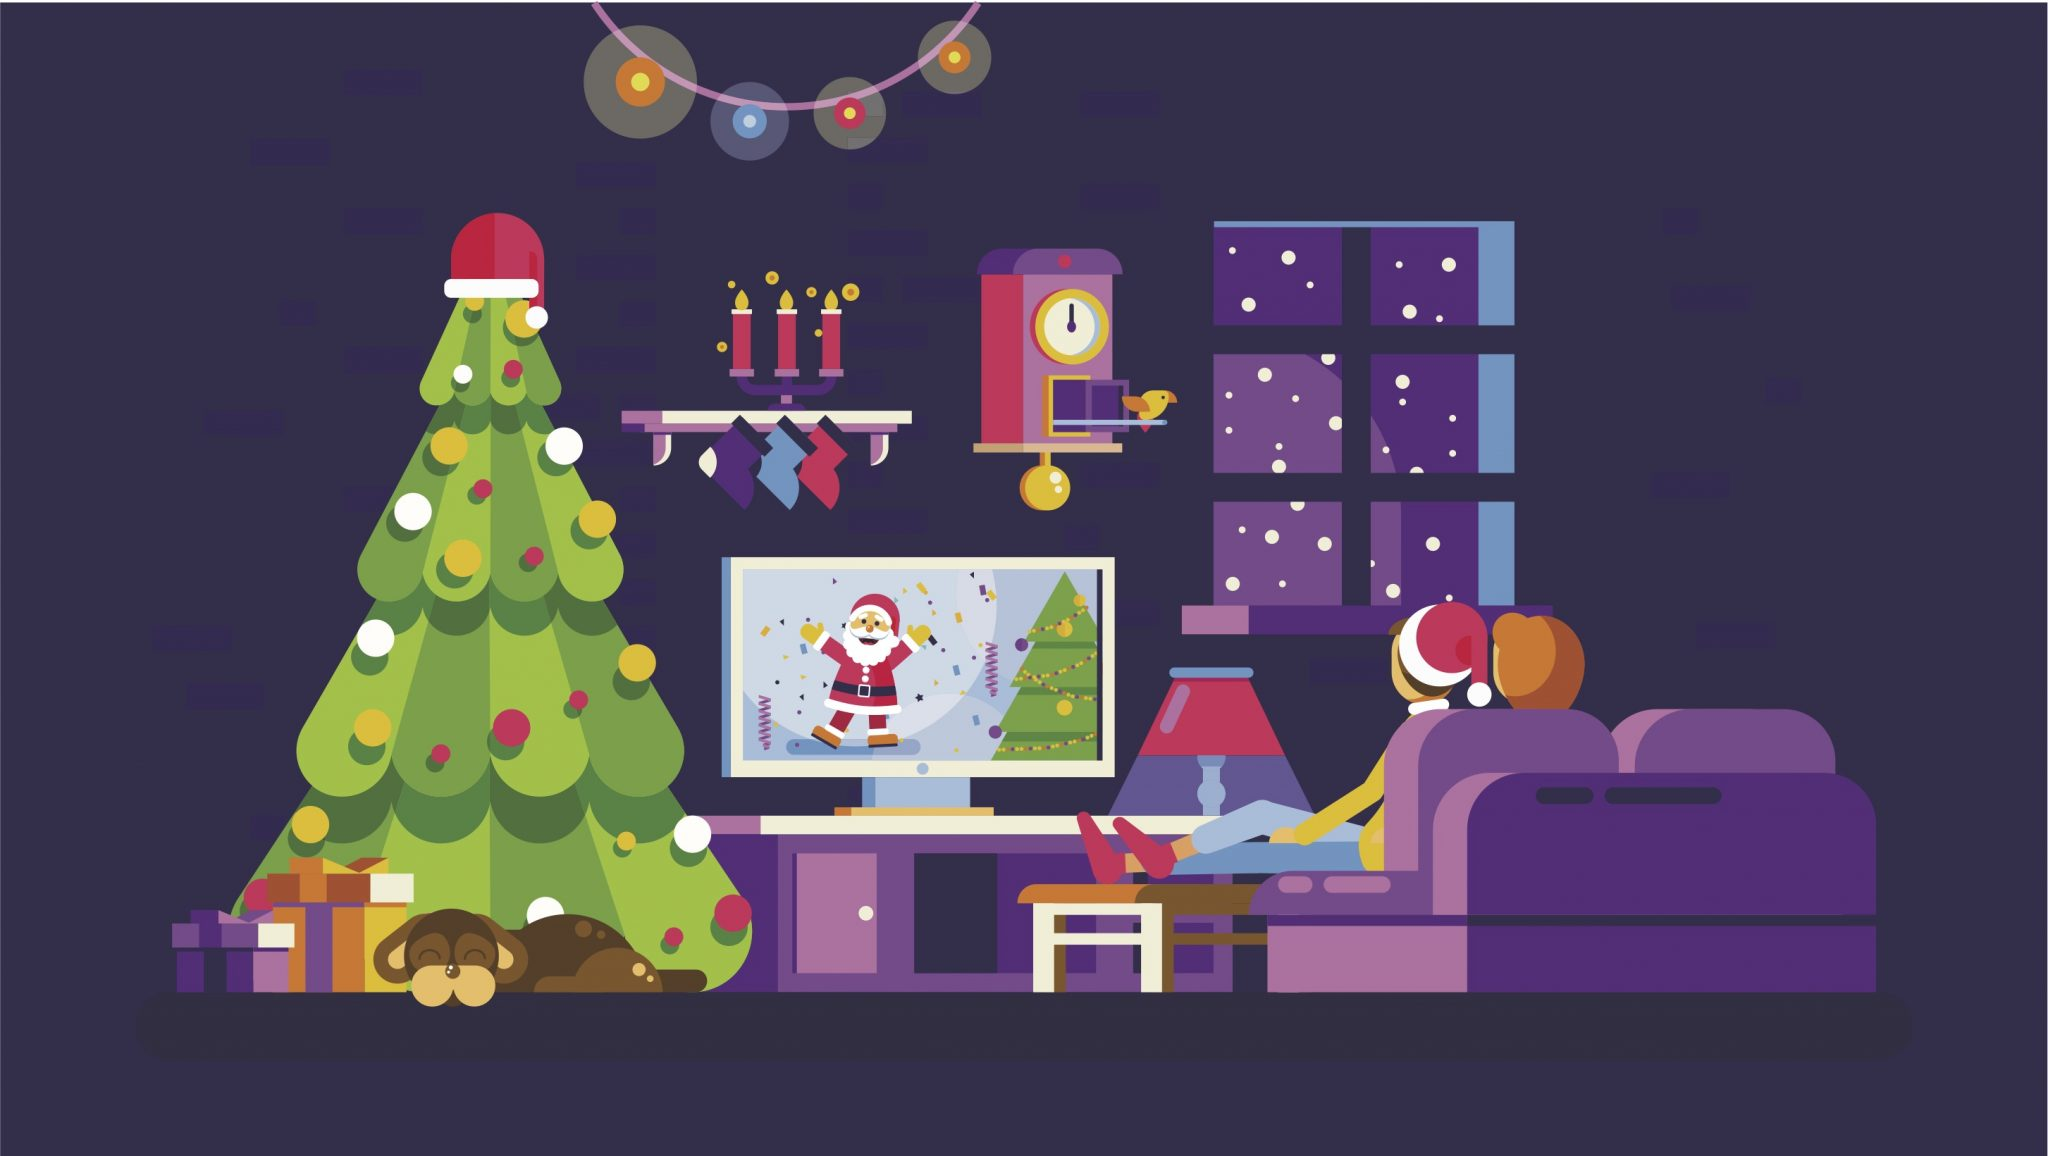 Illustration of two people sitting on the couch watching TV. TV features Santa Clause